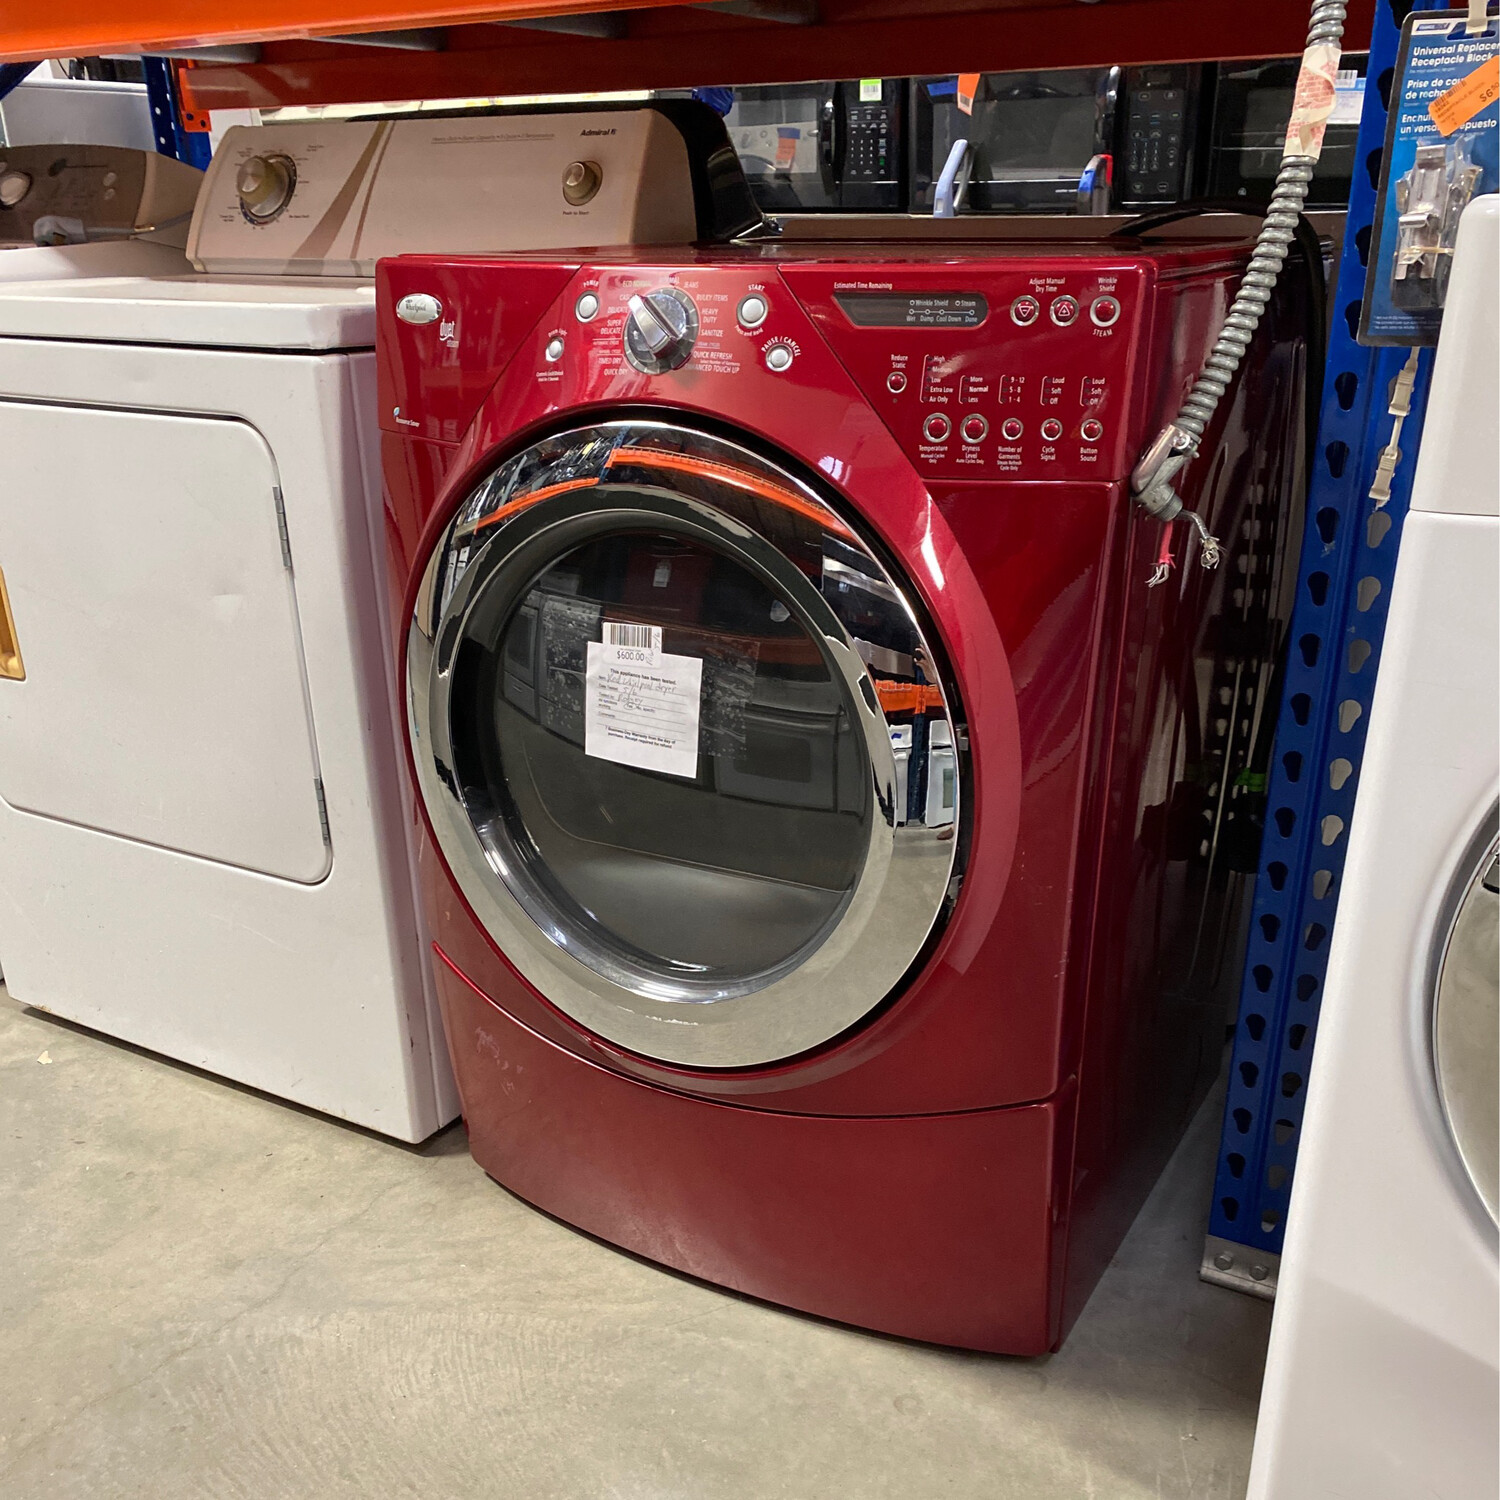 red whirlpool dryer and pedistal